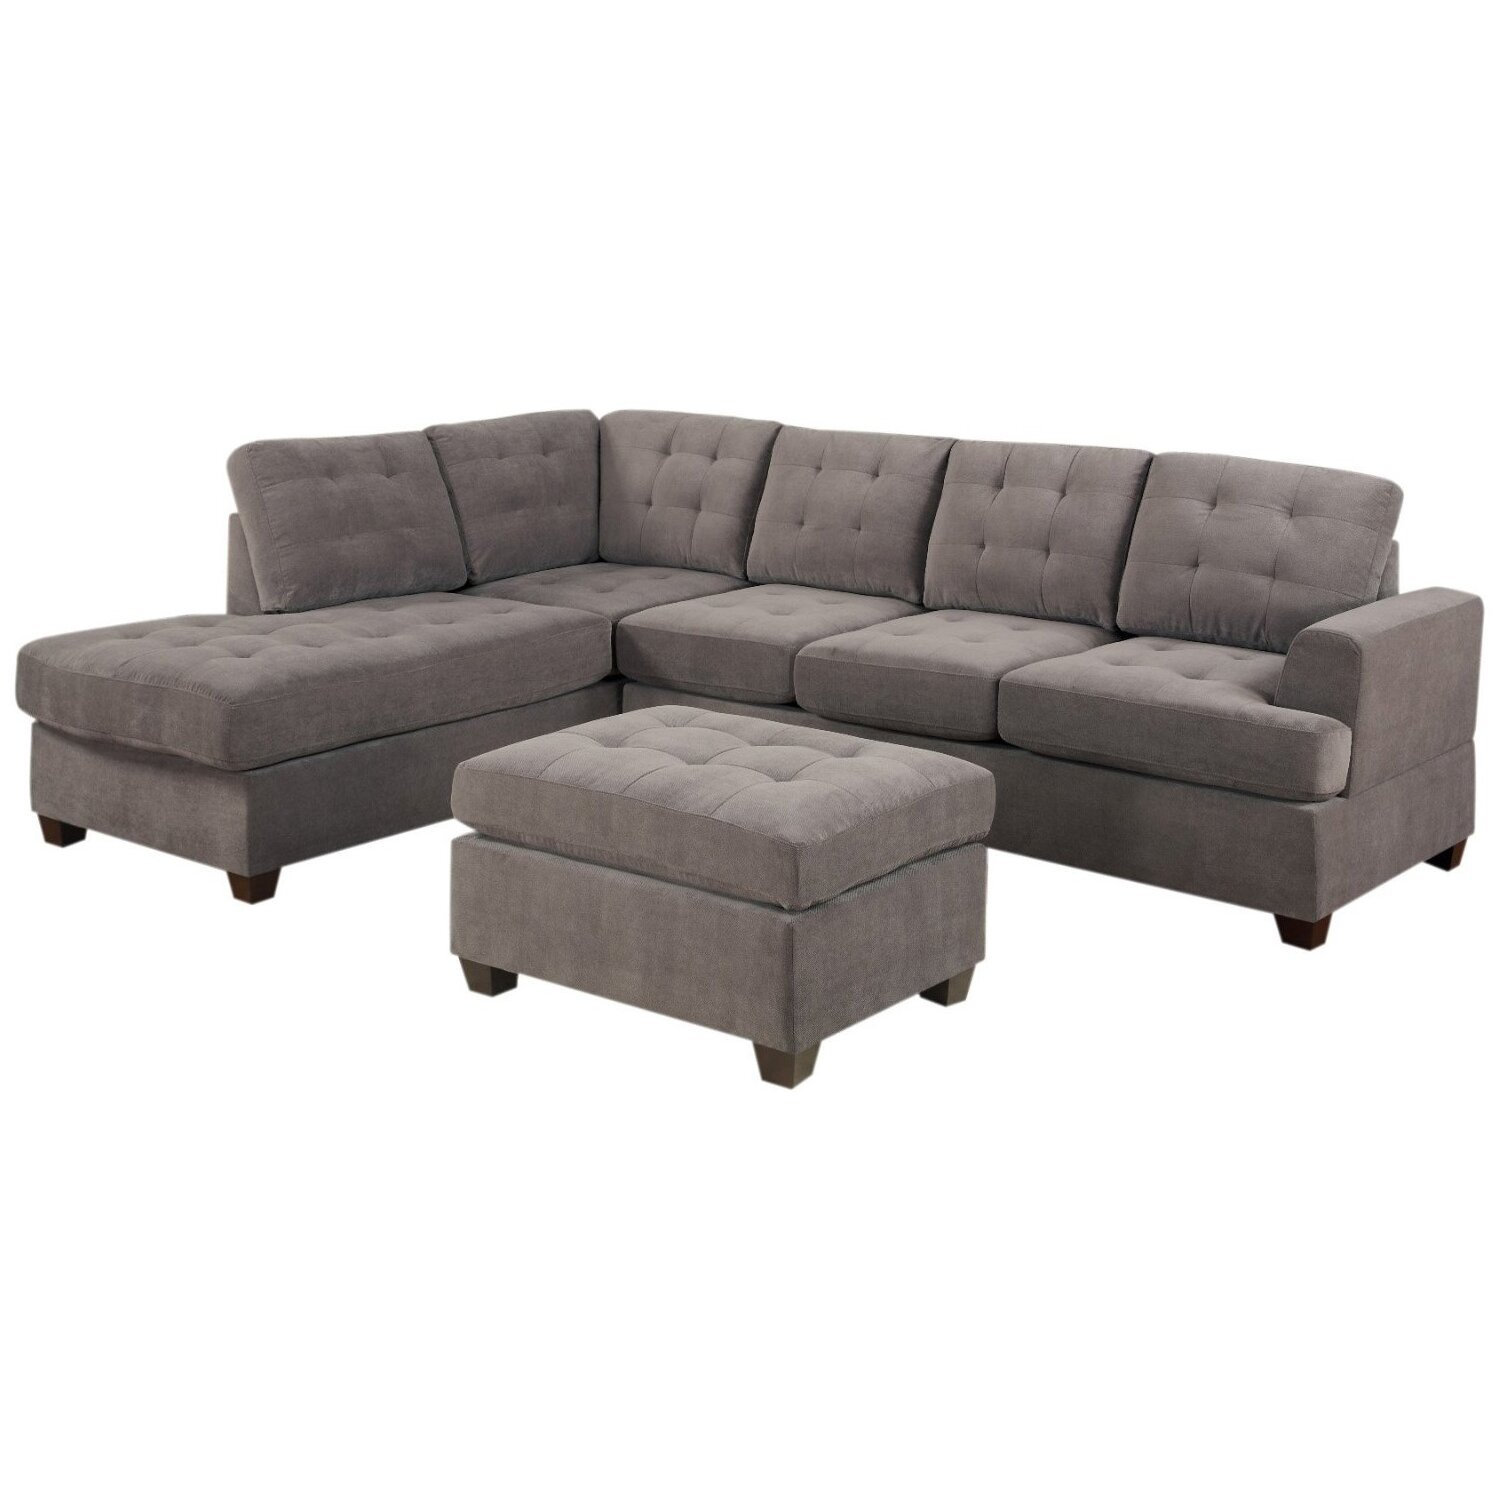 Old Rock Reversible Chaise Sectional Wayfair : Old Rock Modular Sectional RDBS1759 from www.wayfair.com size 1500 x 1500 jpeg 180kB